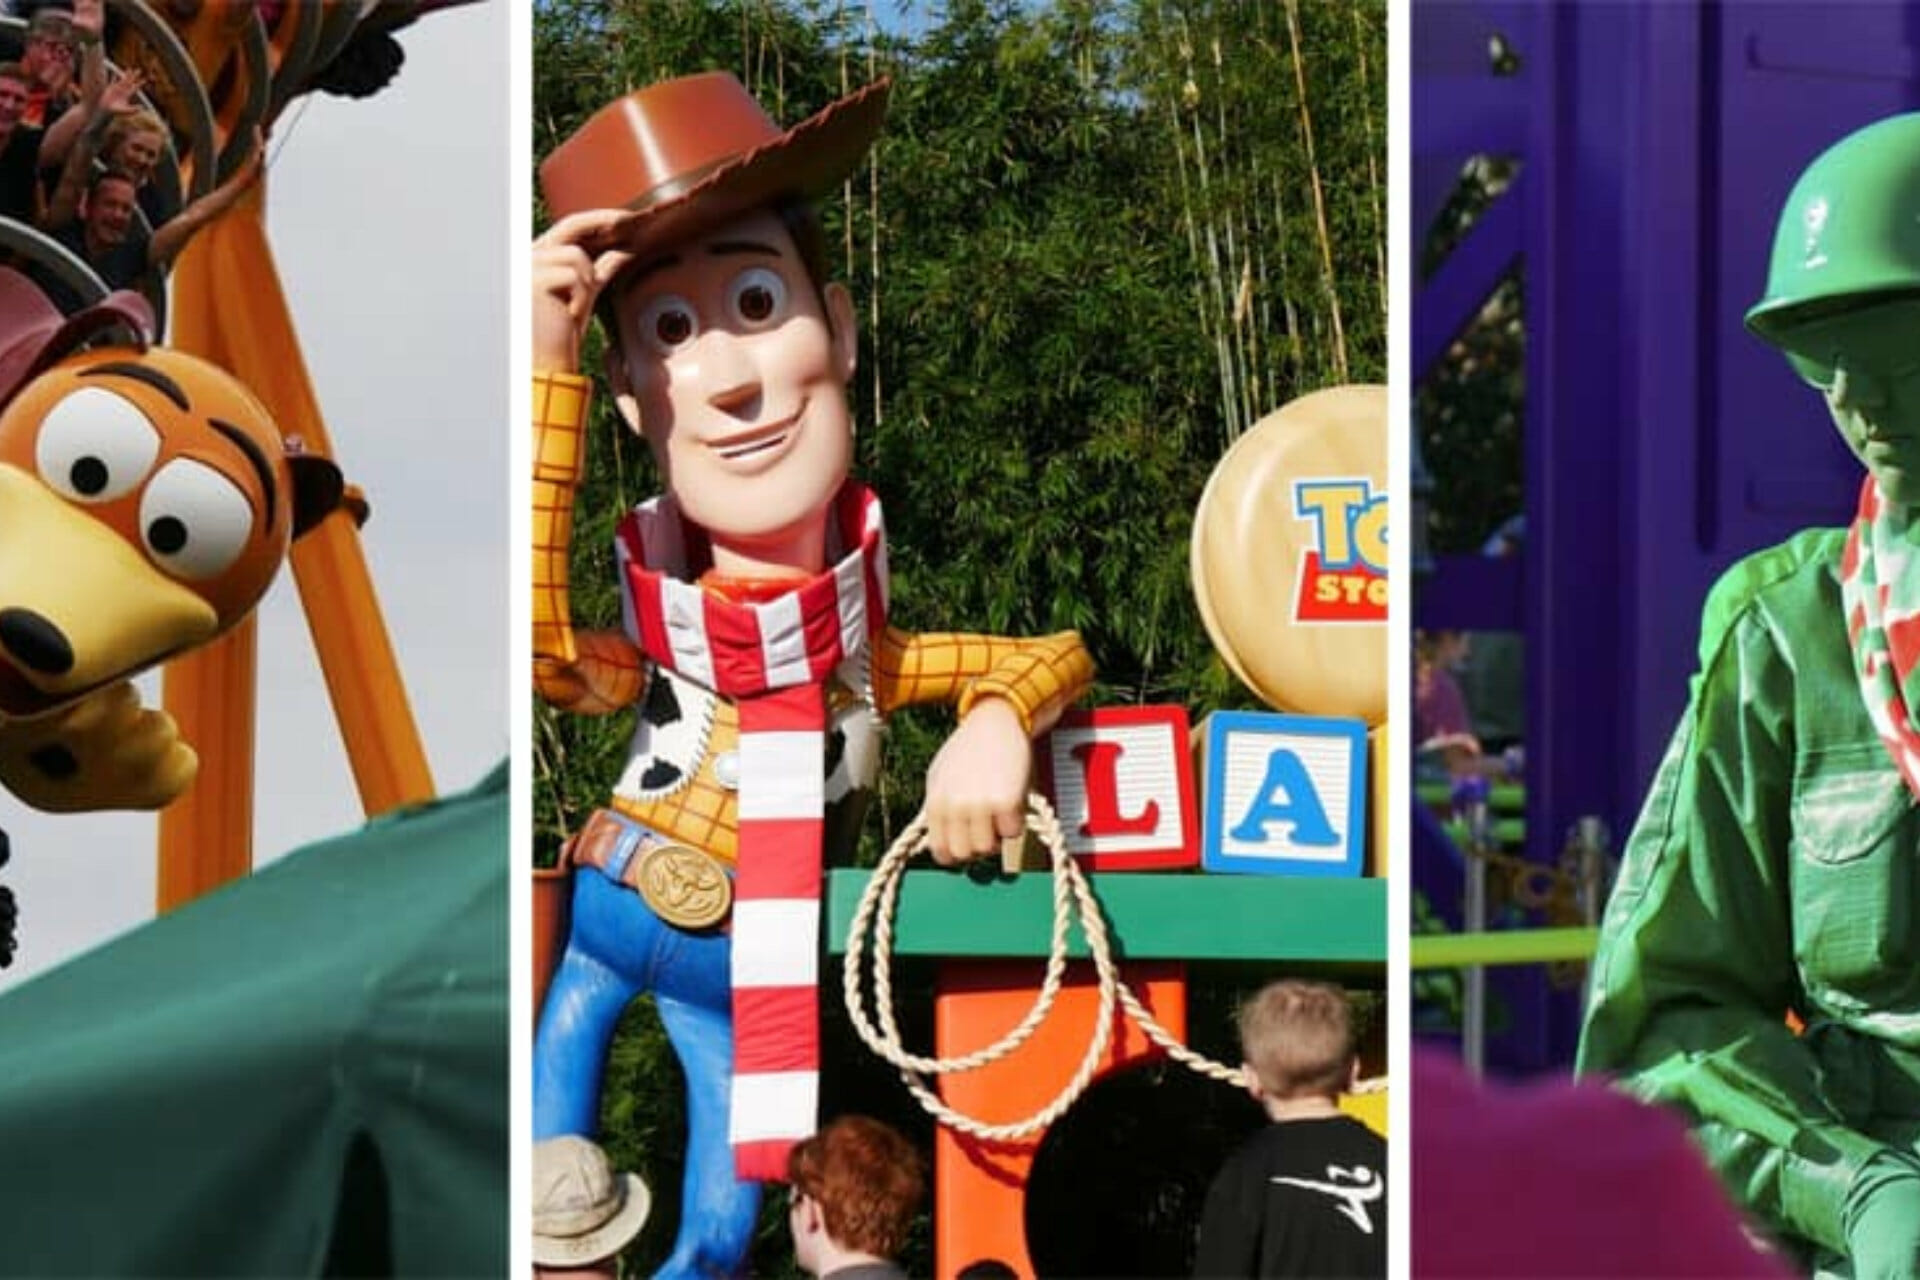 Honest Toy Story Land at Disney's Hollywood Studios Review